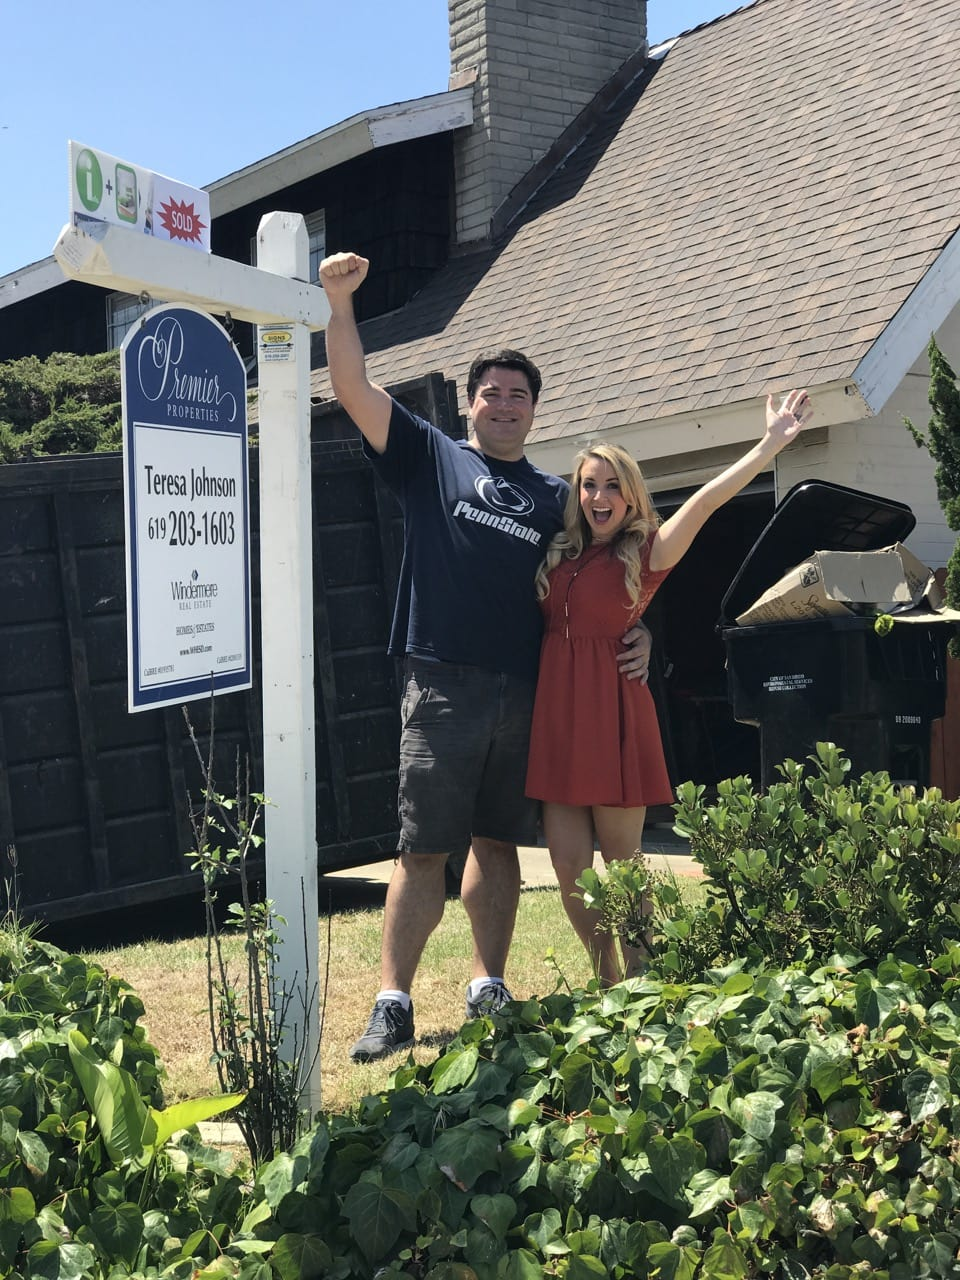 Homeowners Celebrating in front of house